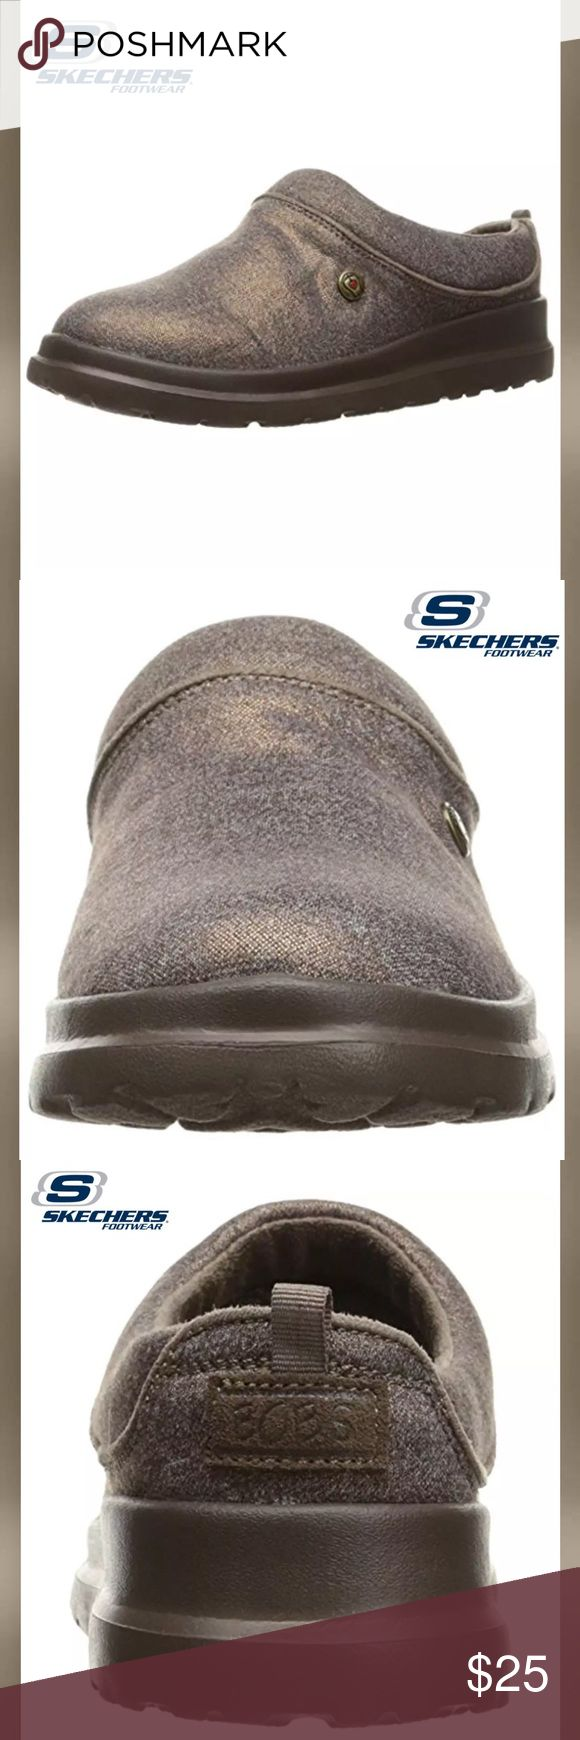 SKETCHERS 'Bobs' Bronze Clog Slippers 💥Please See Above Picture For Detailed Description💥 Sketchers Shoes Slippers